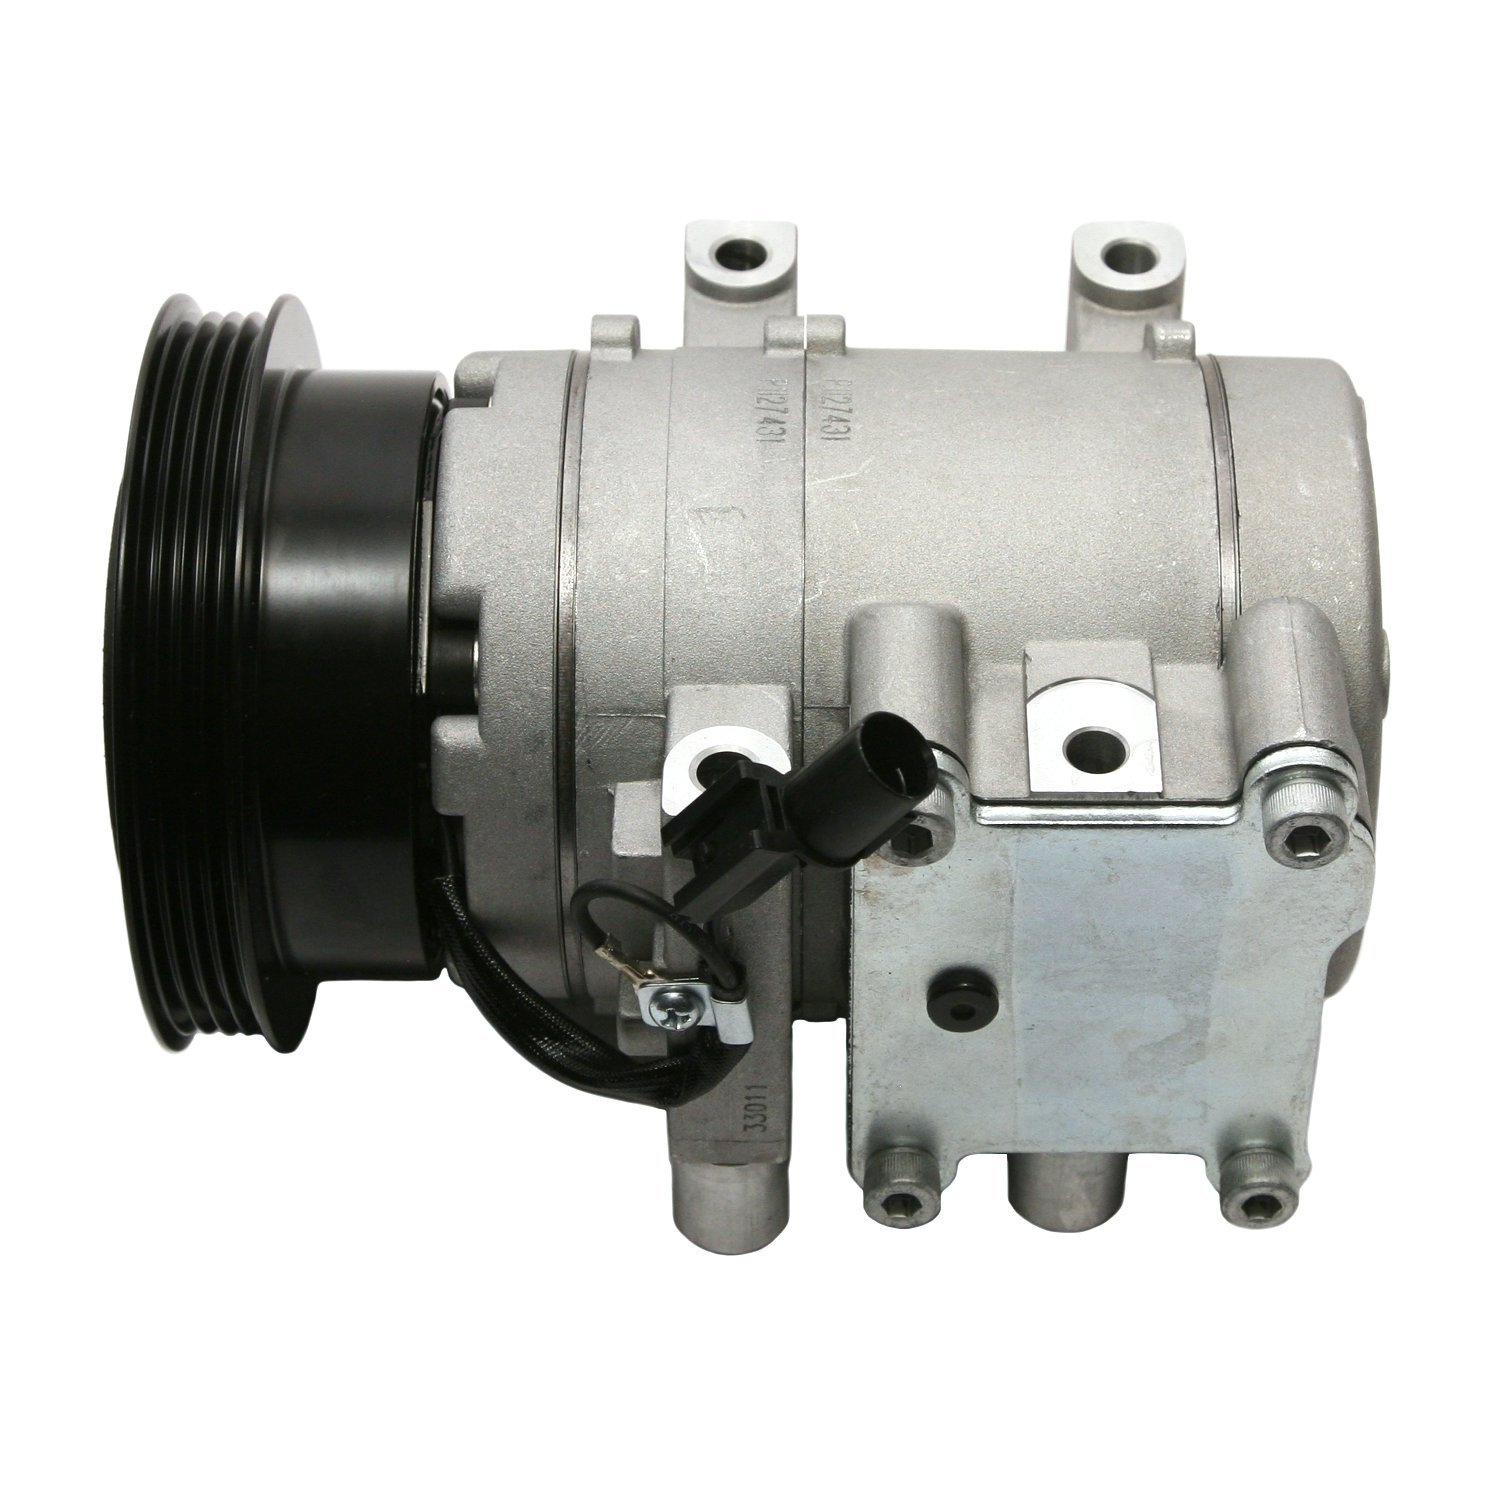 Amazon.com: Delphi CS20131 HS15 New Air Conditioning Compressor: Automotive